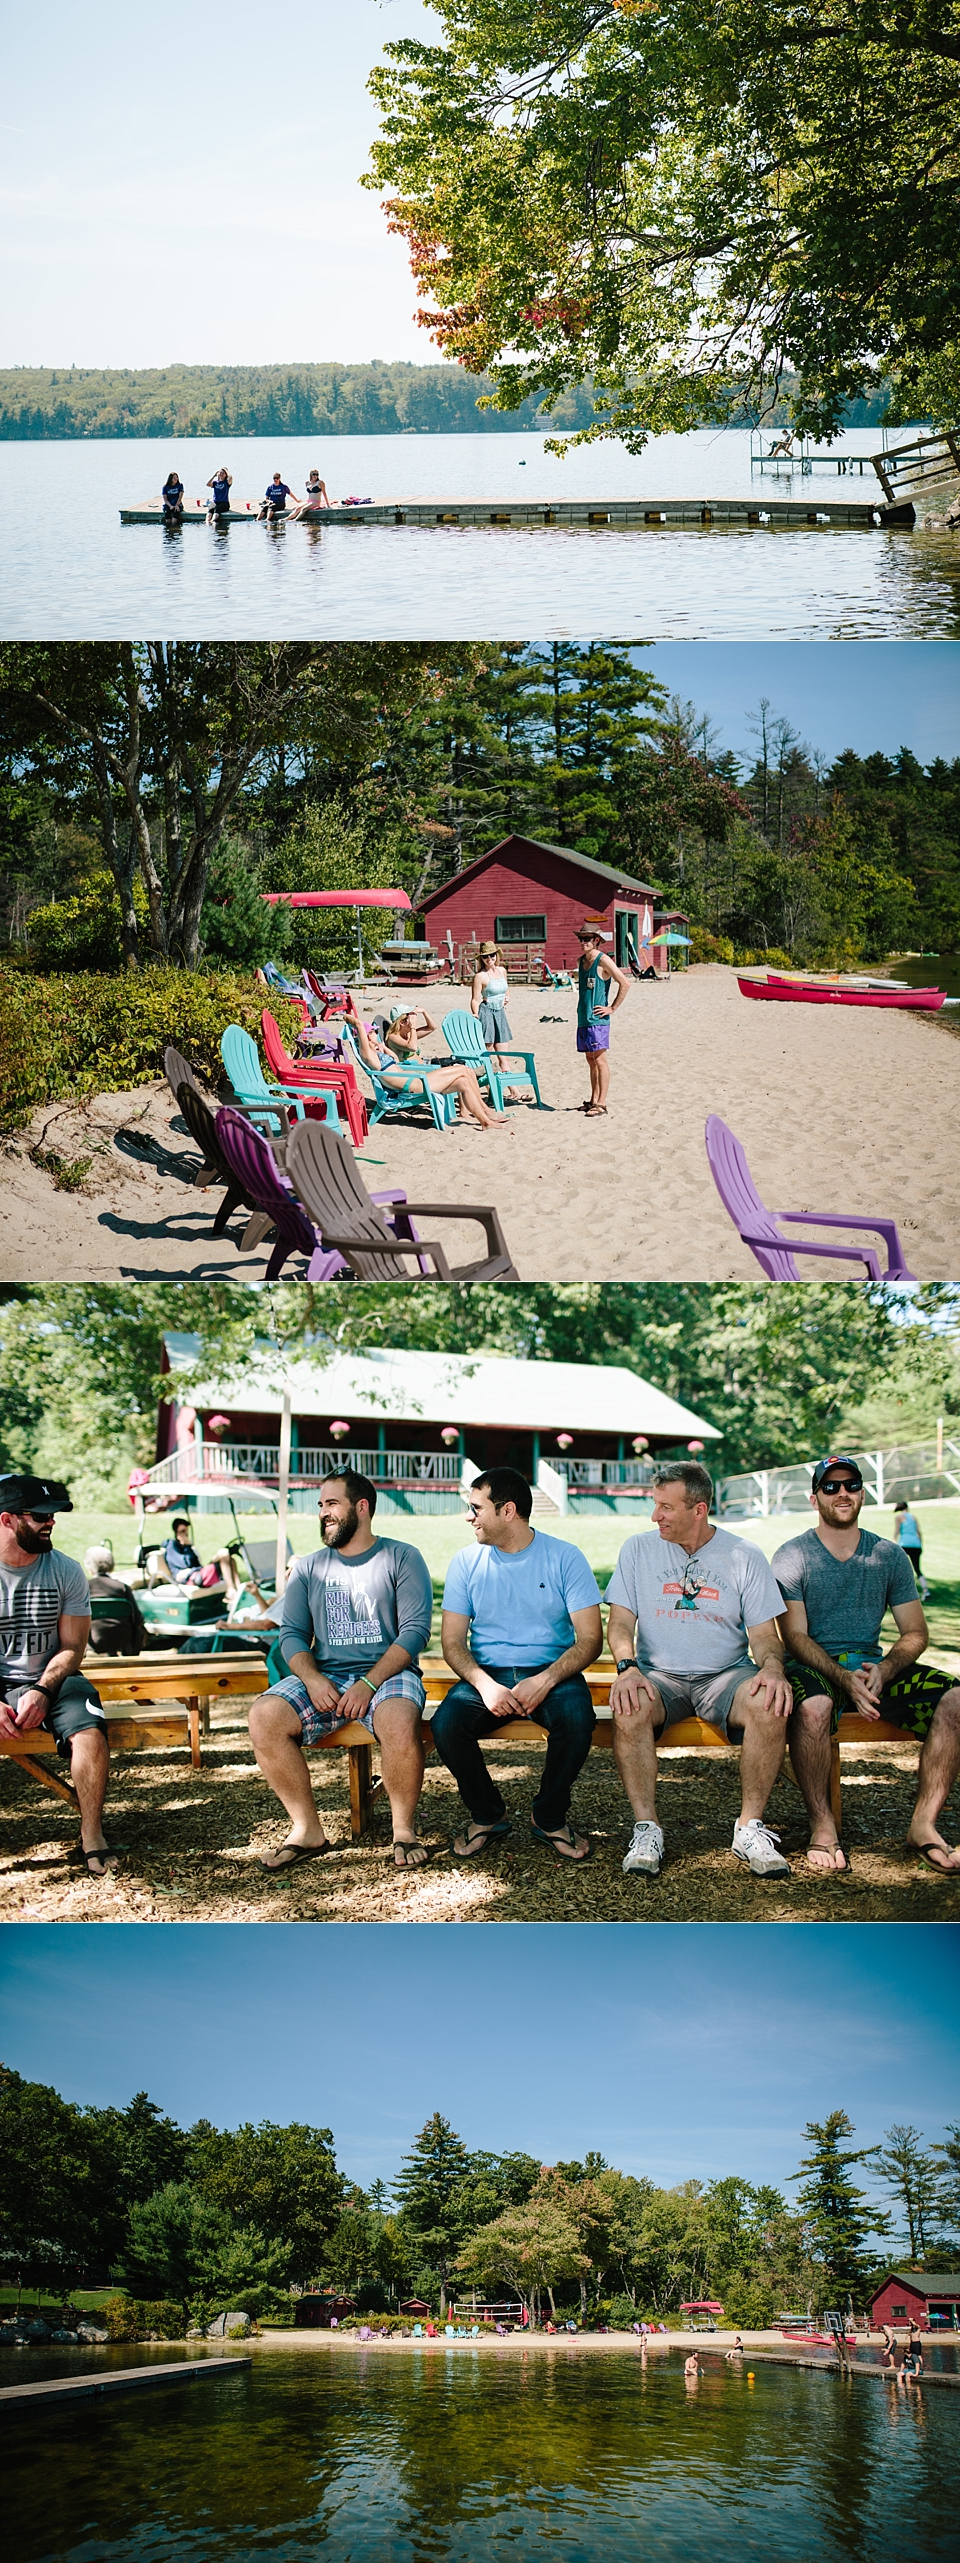 camp nelson big and beautiful singles 7 cabins in camp nelson from $450 find the best offers for properties in camp nelson to the west through the hardwoods and between the lakes to.